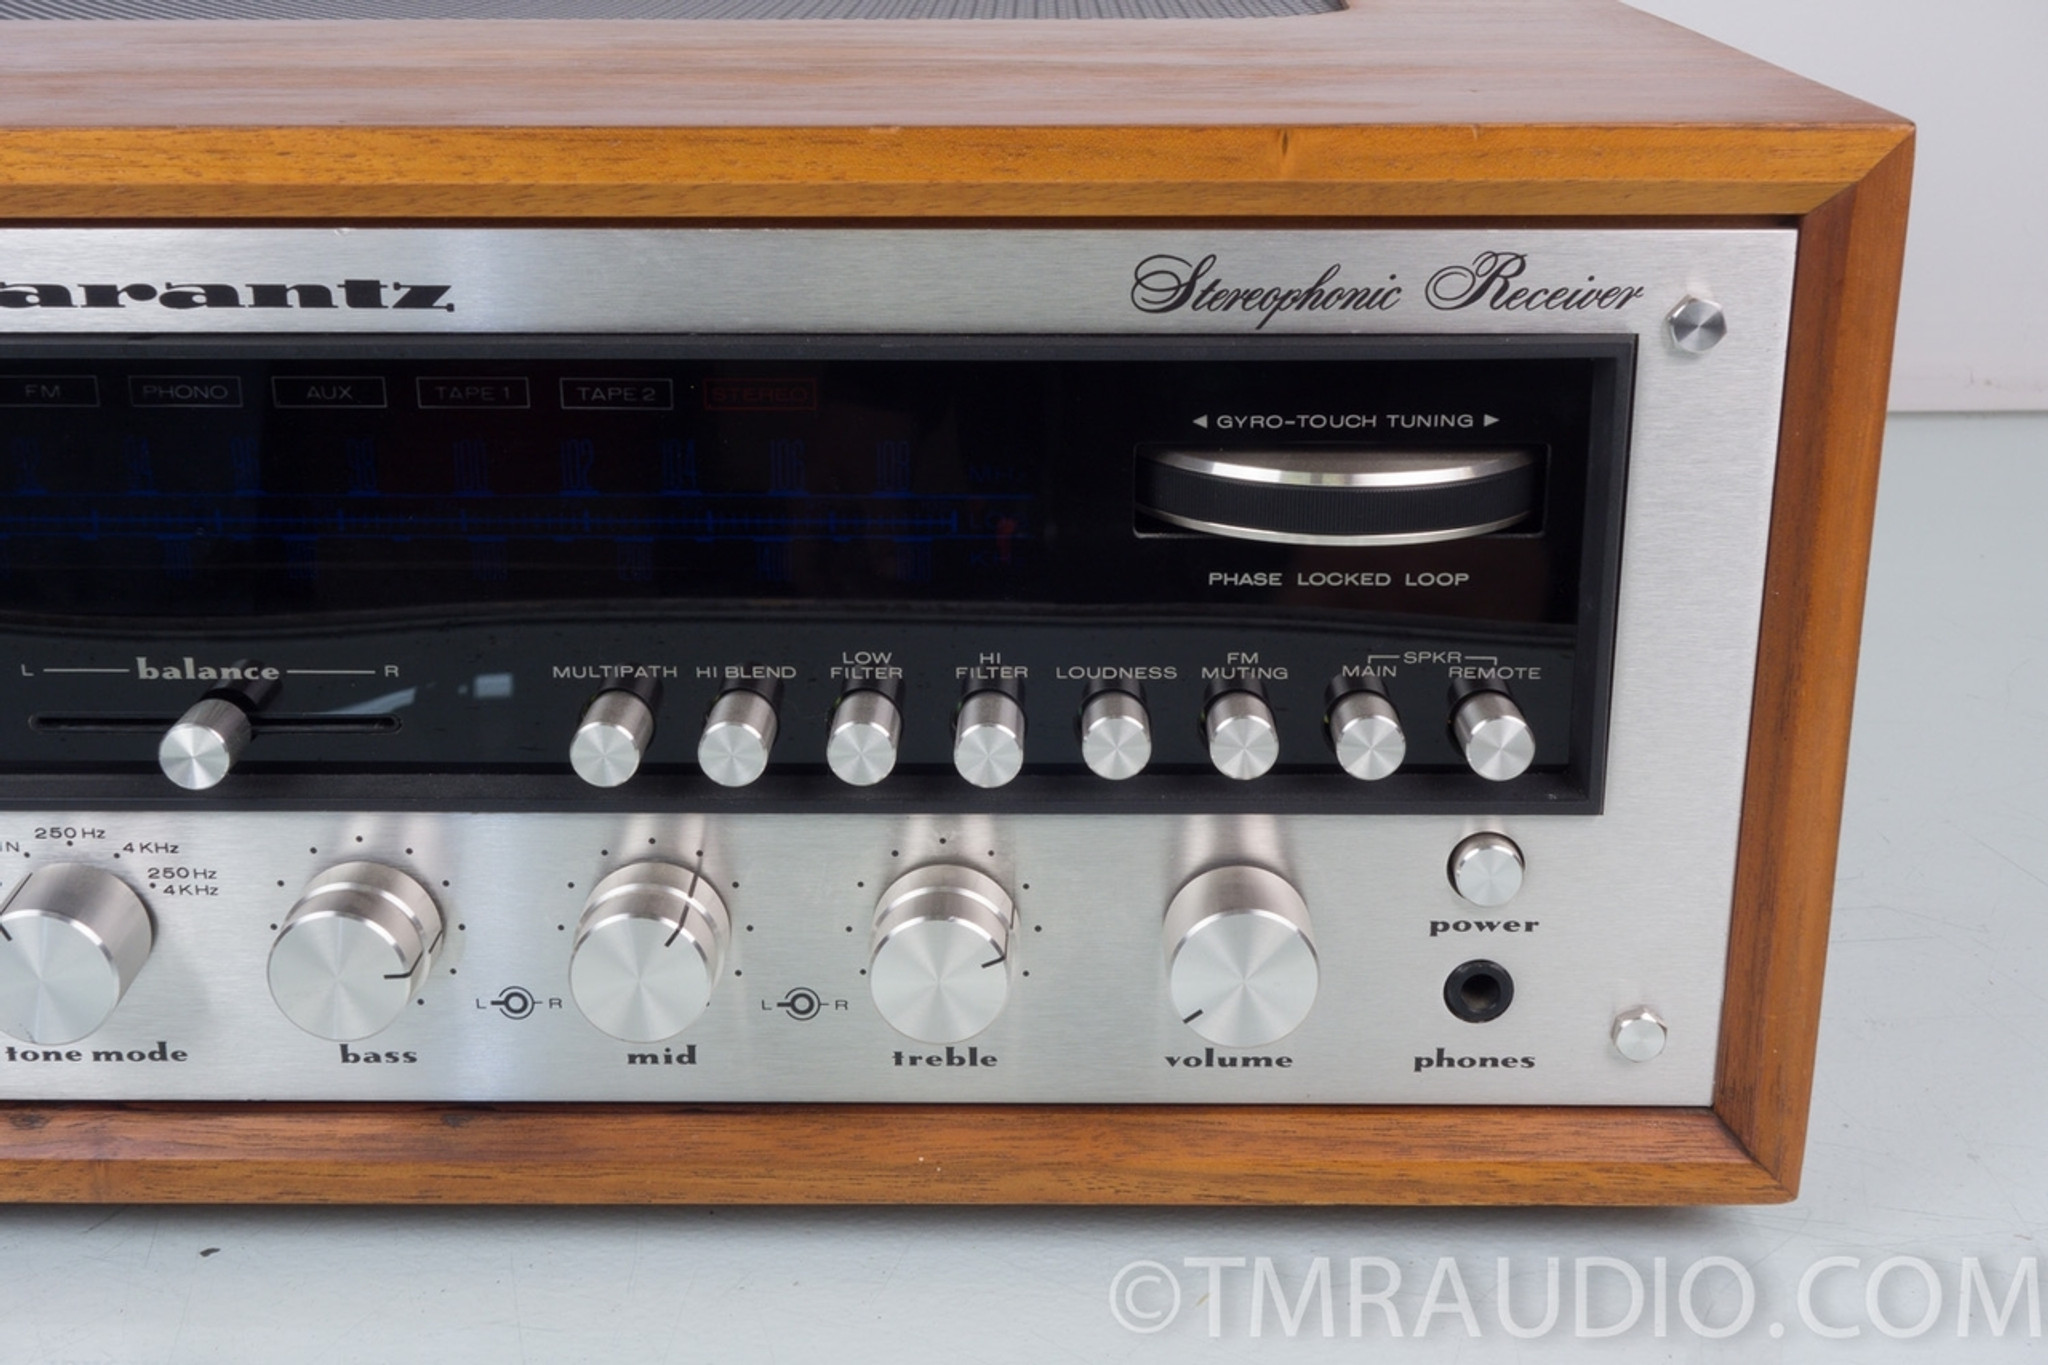 Marantz 2325 Vintage AM/FM Stereo Receiver with Wood Case